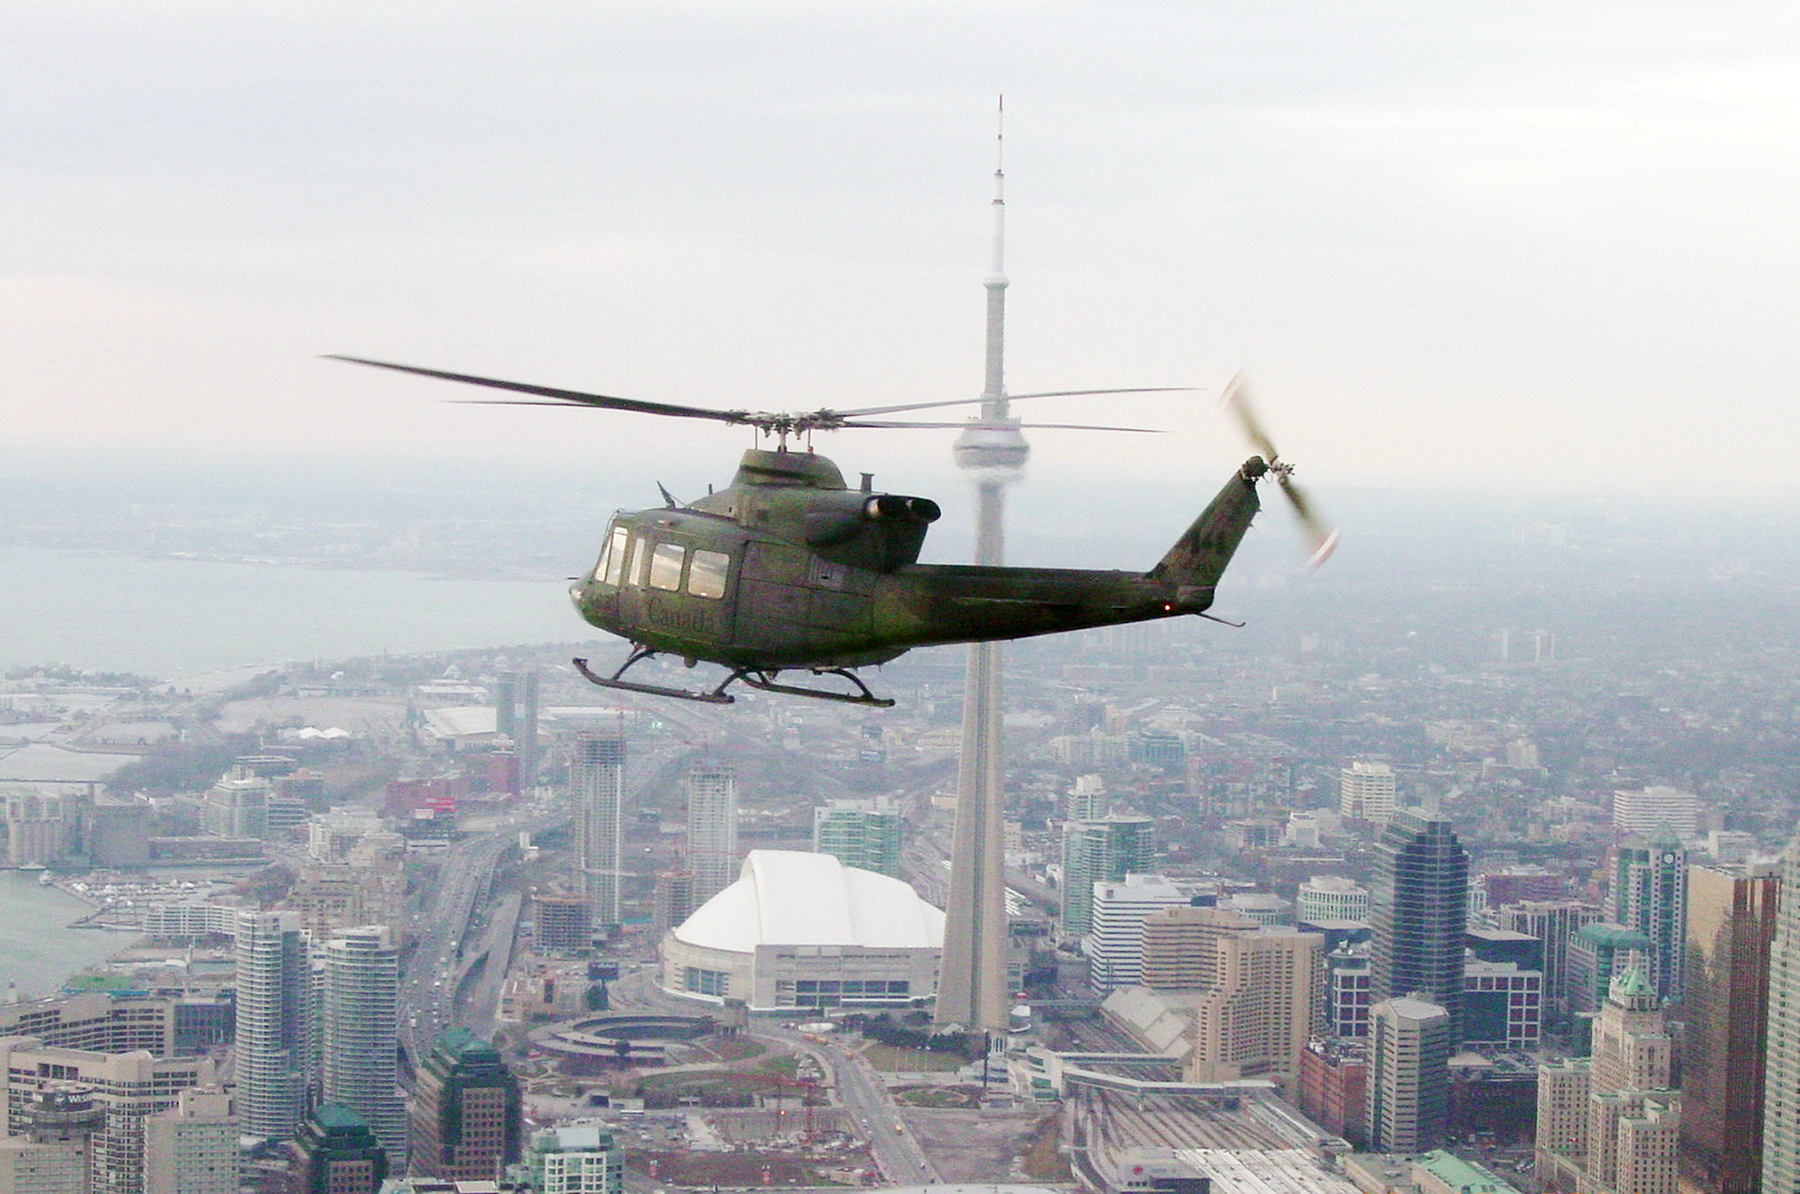 A CH-146 Griffon helicopter from 1 Wing Kingston, Ontario's 400 Tactical Helicopter Squadron, piloted by Captain Harry Ollmann, with co-pilot Captain Paul Reid and flight engineer Corporal Ian Johnston, flies over downtown Toronto on December 16, 2005, bound for Sick Children's Hospital to deliver Christmas gifts and fun. Every year, 1 Wing elves organize and deliver gifts collected from military members and the local community to brighten the day for young patients unable to spend Christmas at home with their families. PHOTO: Master Corporal Larry Wilson, DND Archives, FA2005-0183a